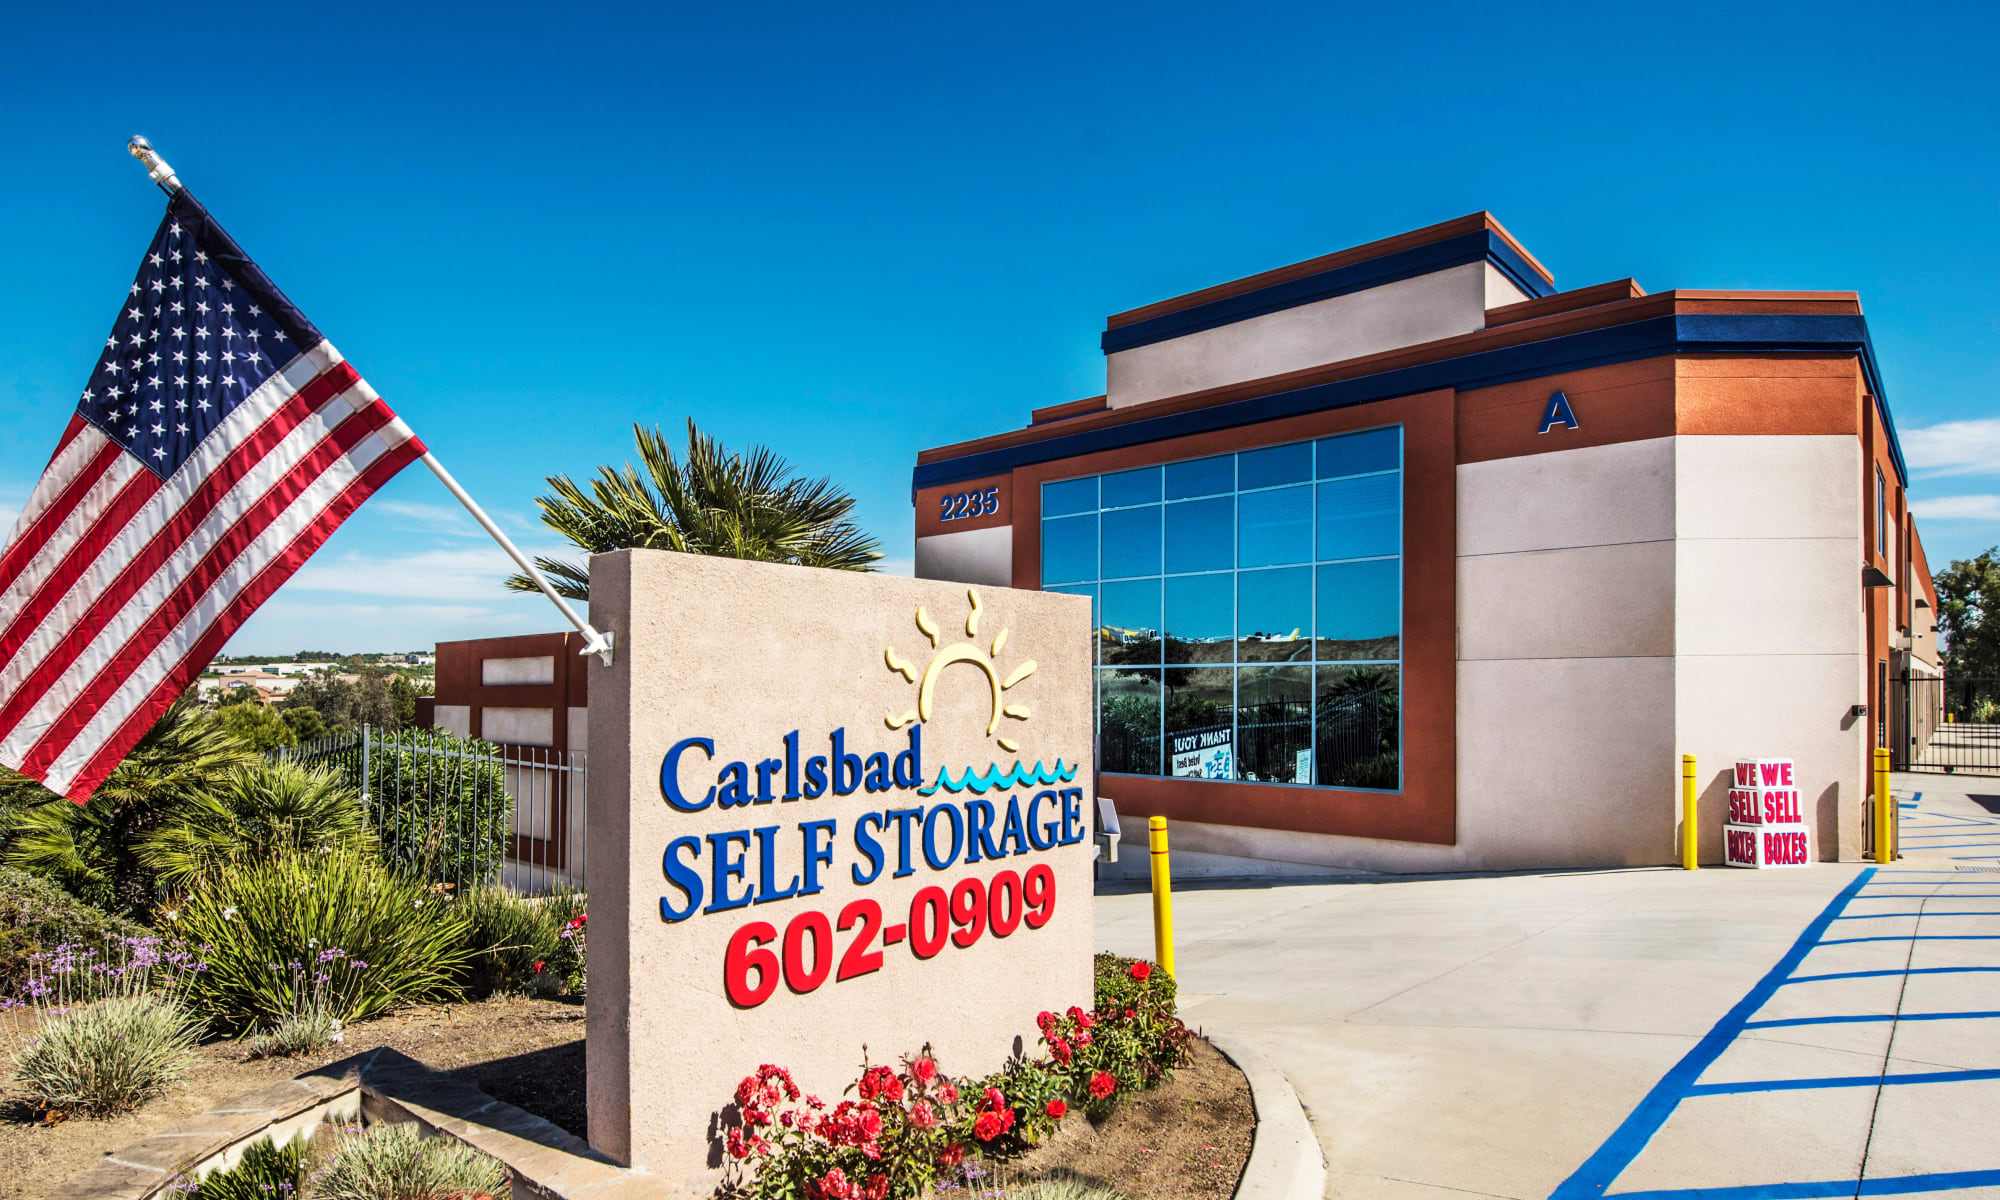 Carlsbad Self Storage in Carlsbad